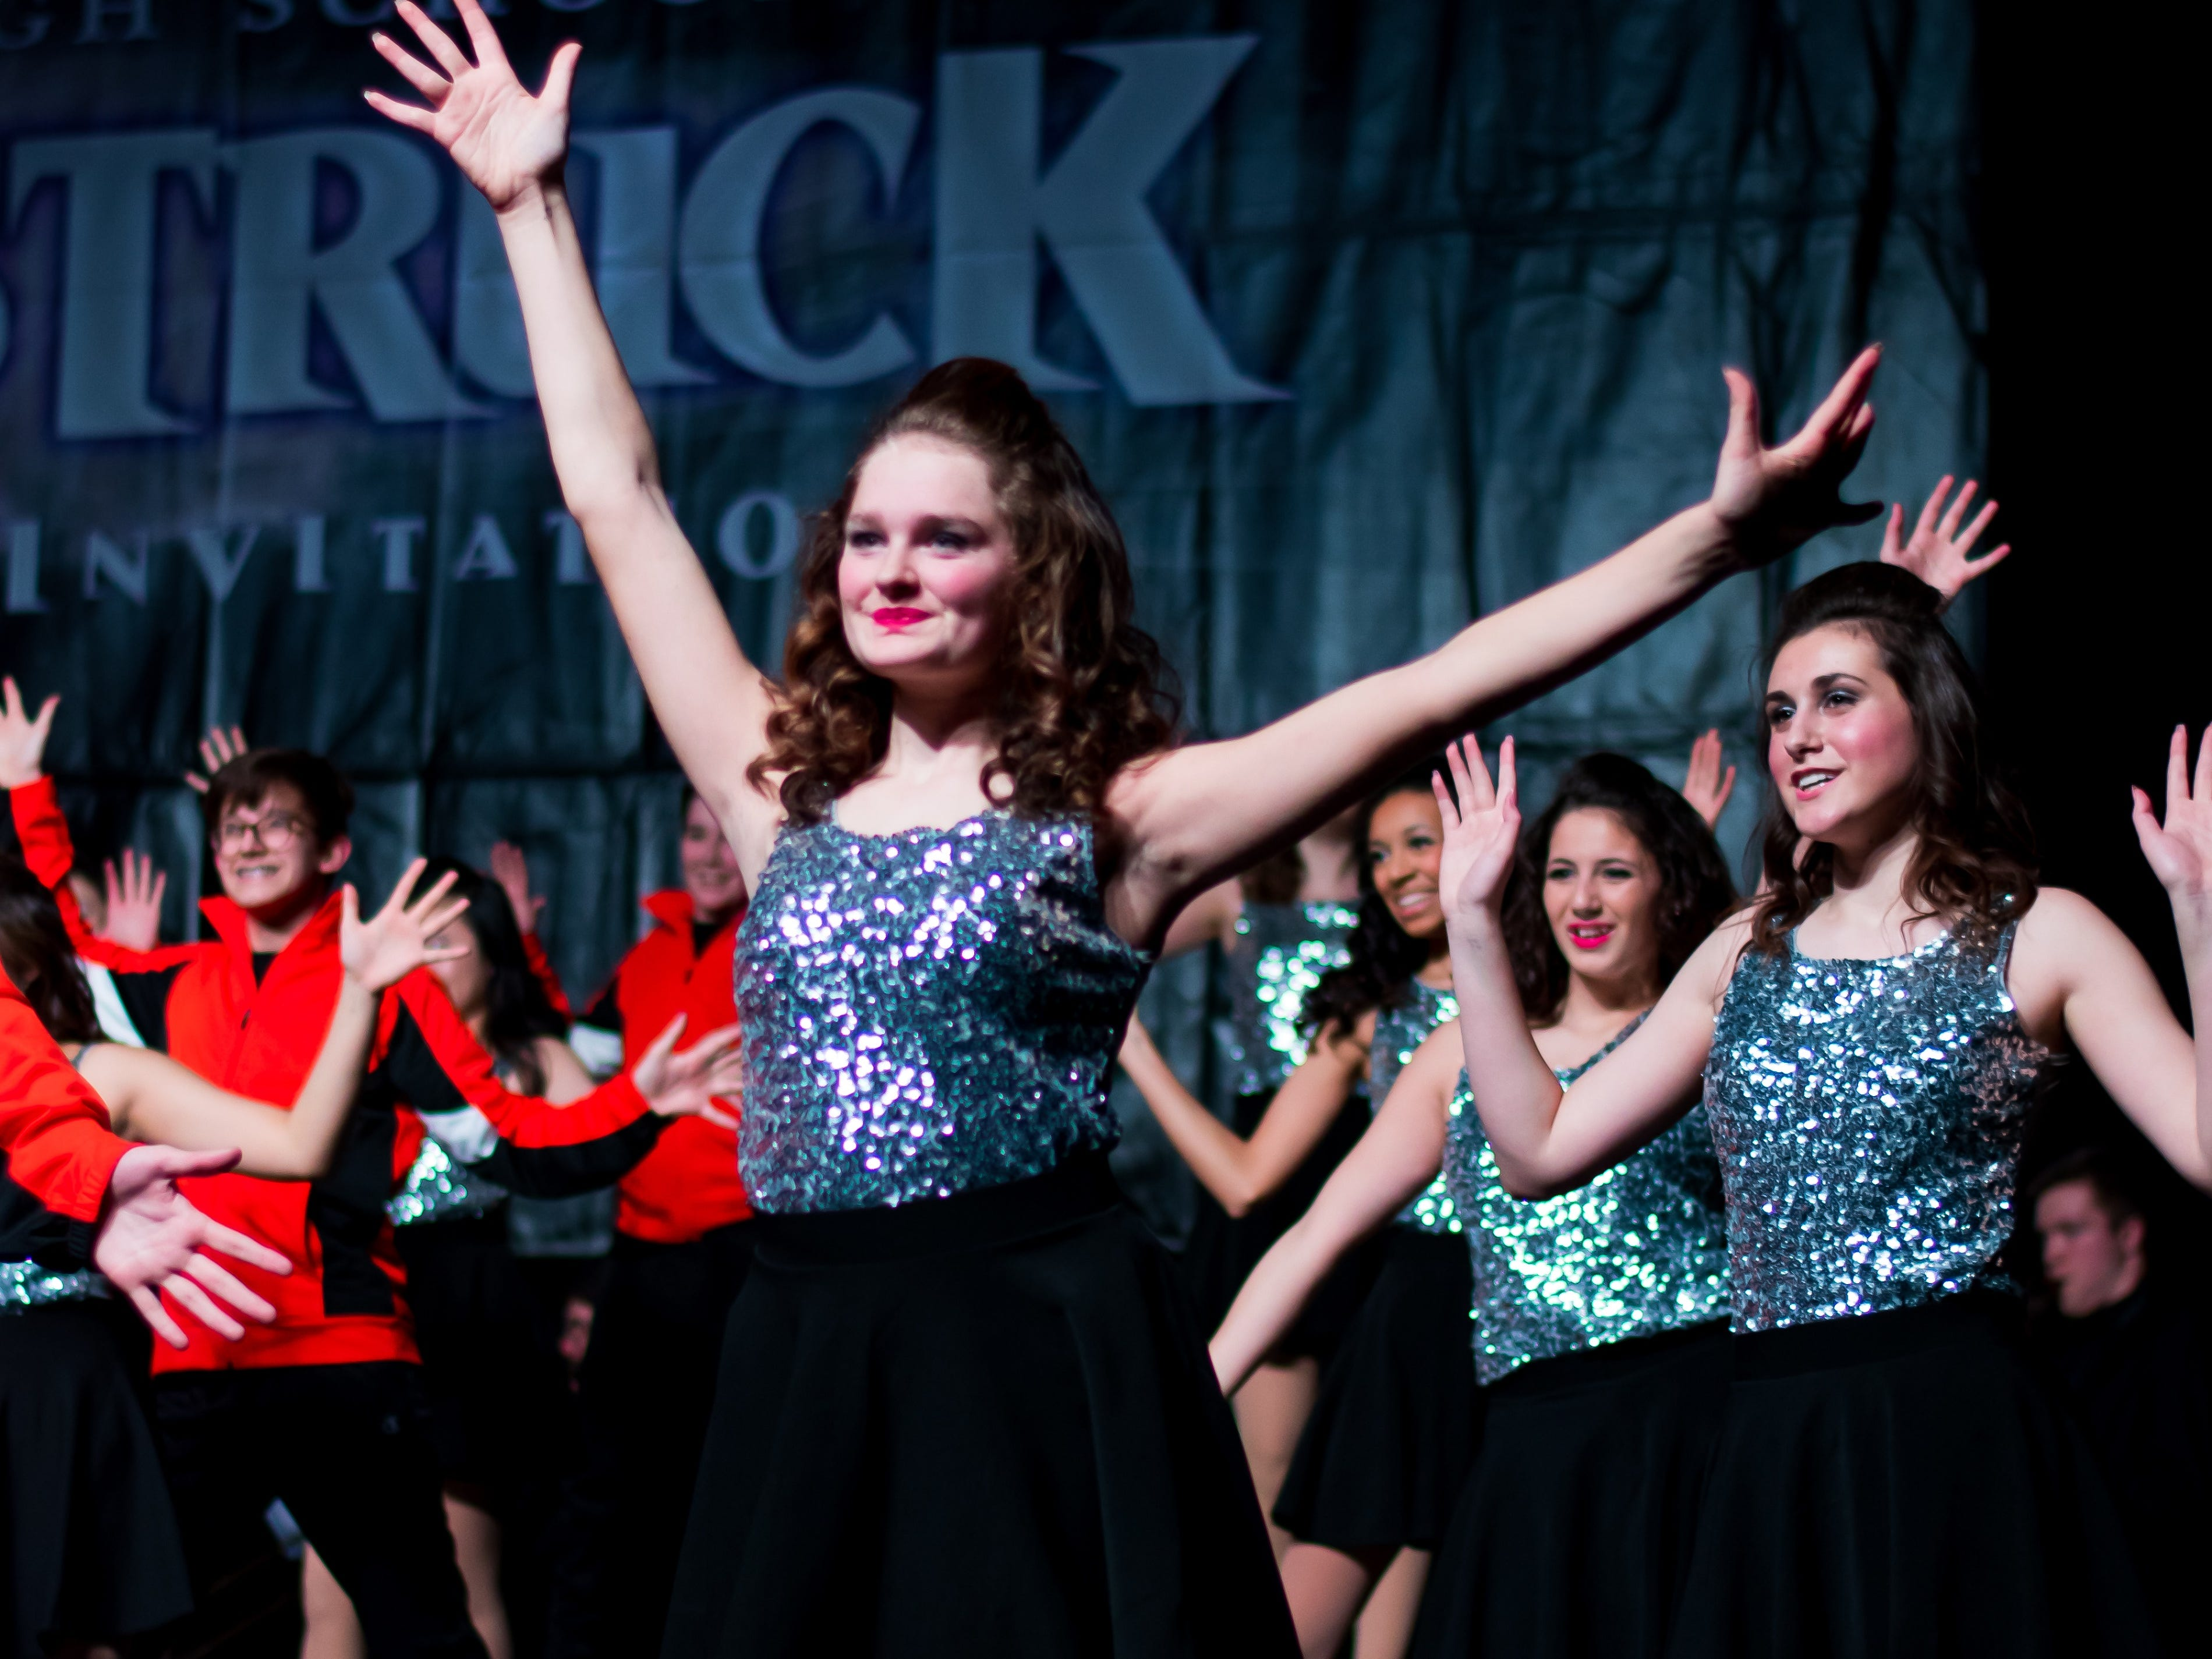 Valley High show choir group Ignition performs on Saturday, Jan. 12, 2019 at the Waukee Star Struck Show Choir Invitational in the Waukee High School Field House.